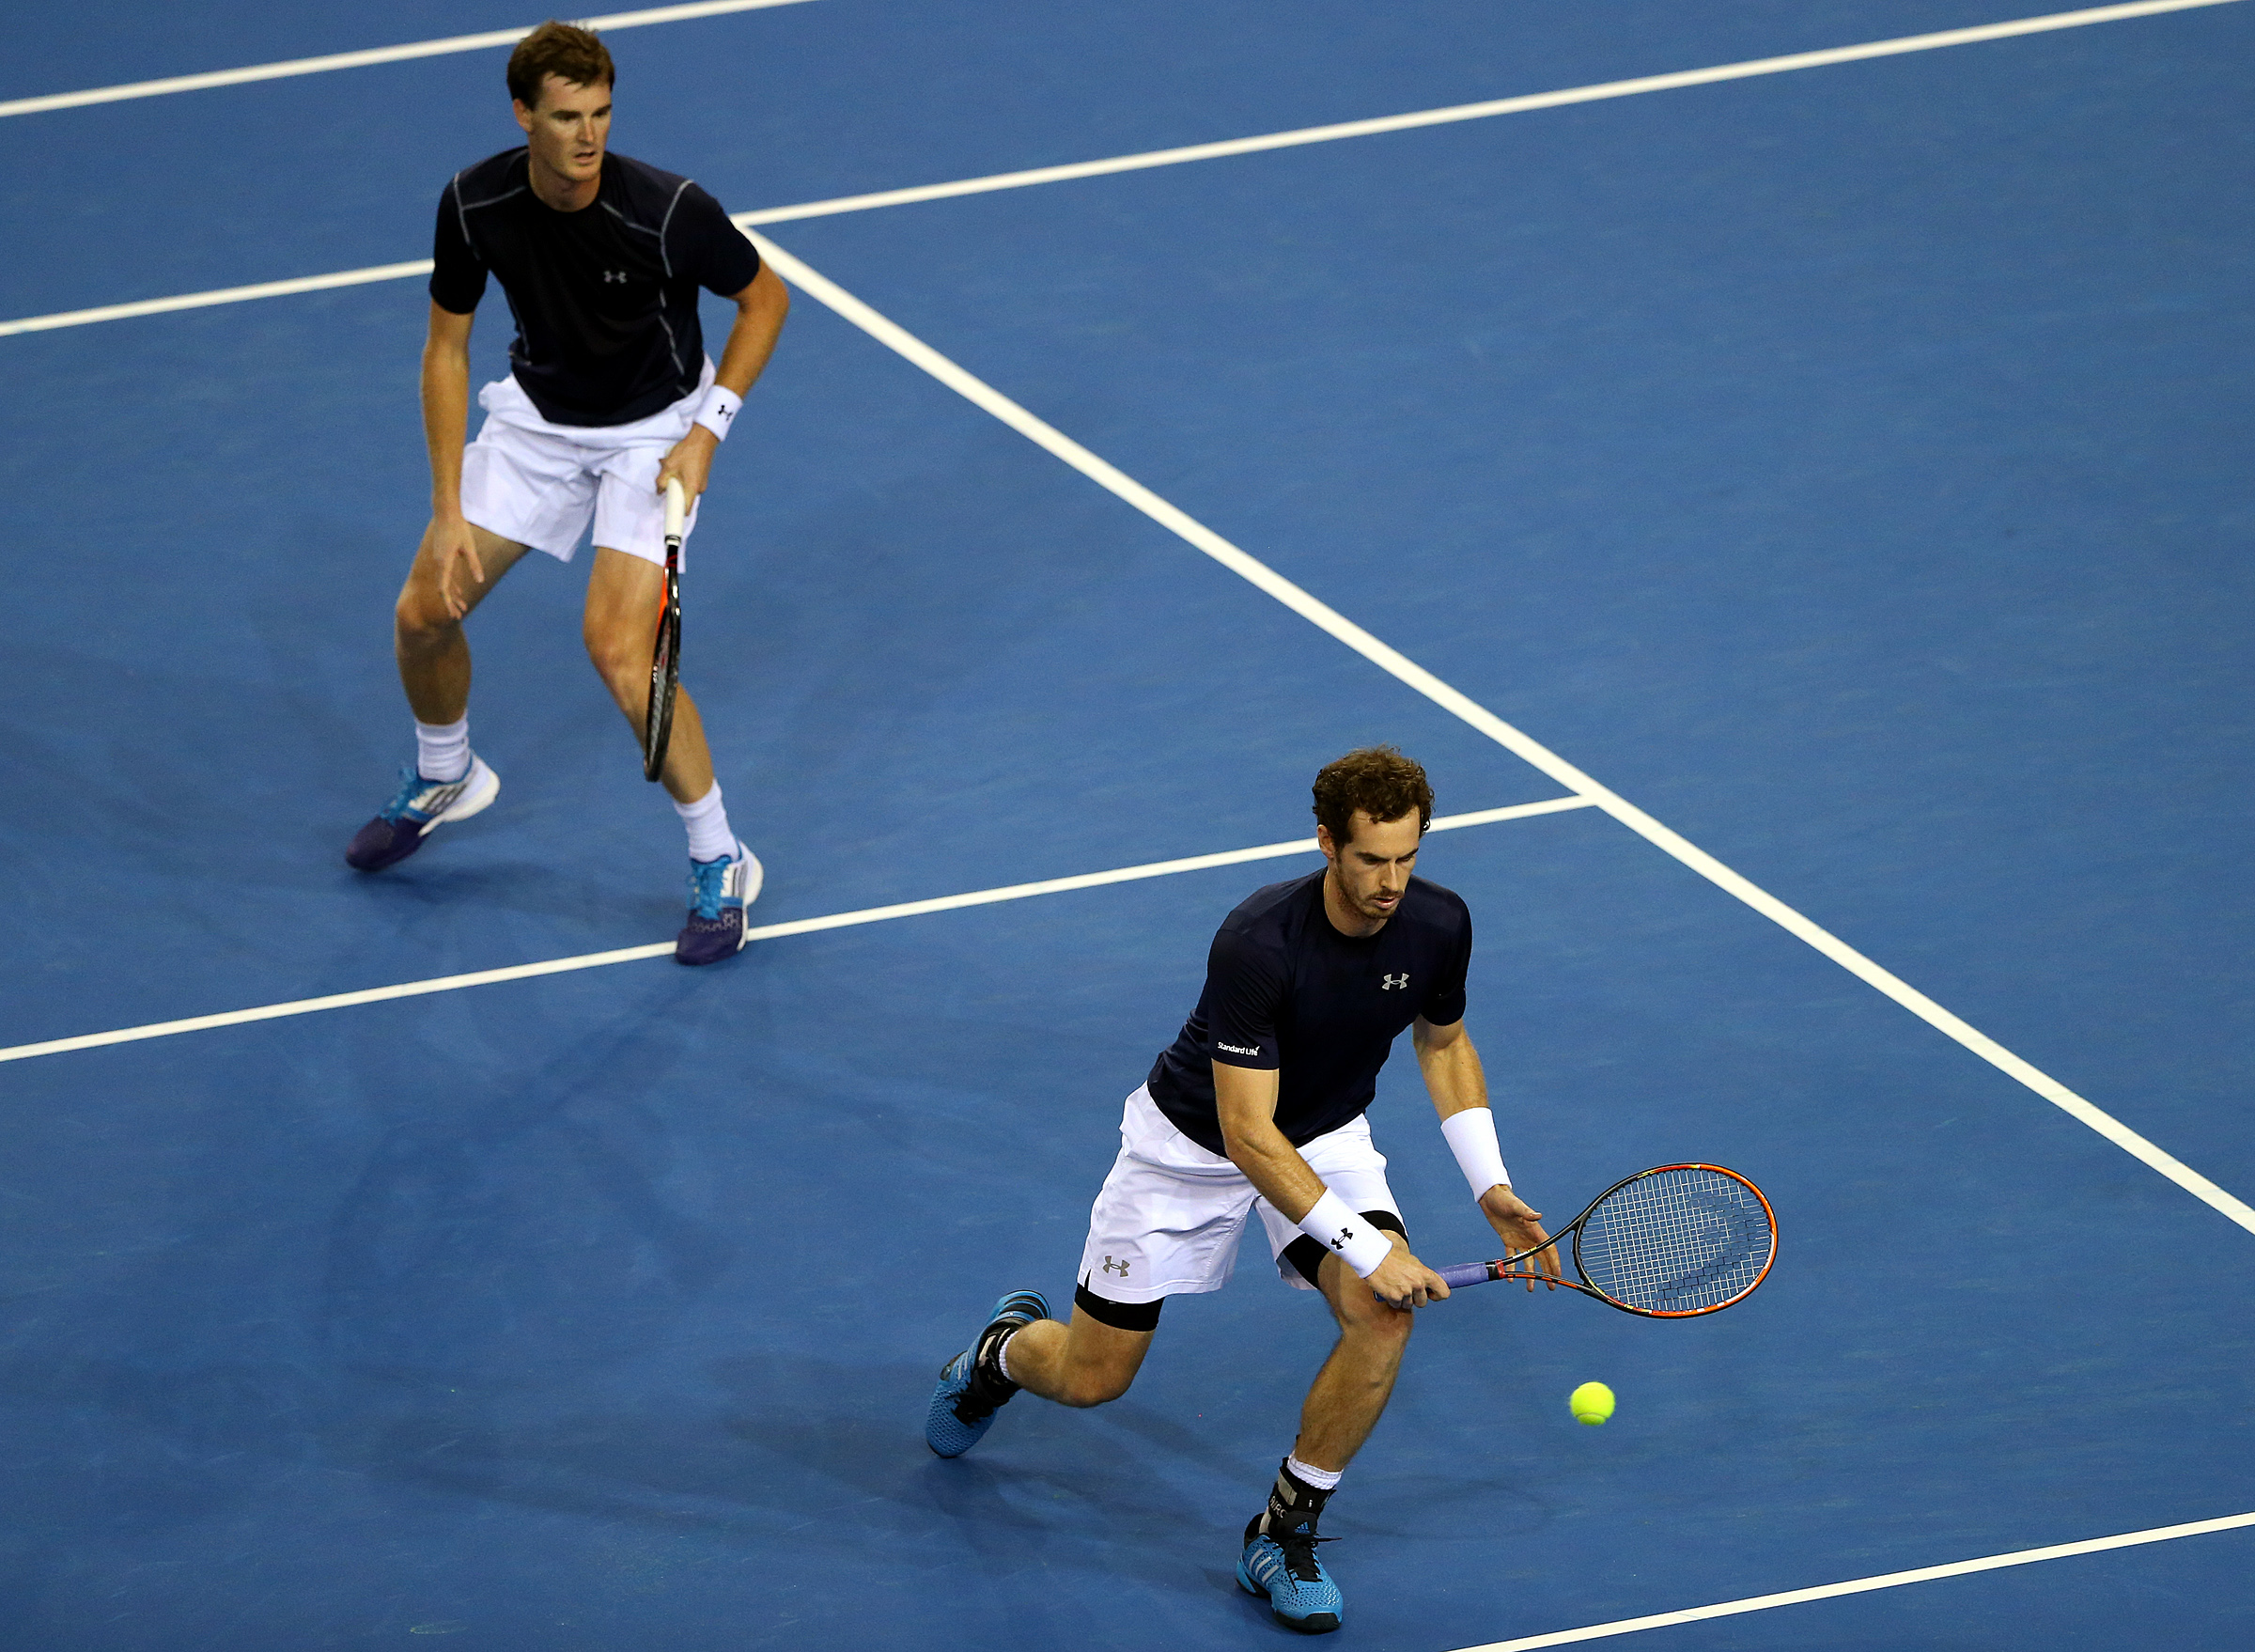 Britain's Andy Murray, right, and Jamie Murray plays a shot to Australia's Sam Groth and Lleyton Hewitt during the semifinal doubles tennis match between Britain and Australia of the Davis Cup in Glasgow, Saturday Sept. 19, 2015. (AP Photo/Scott Heppell)